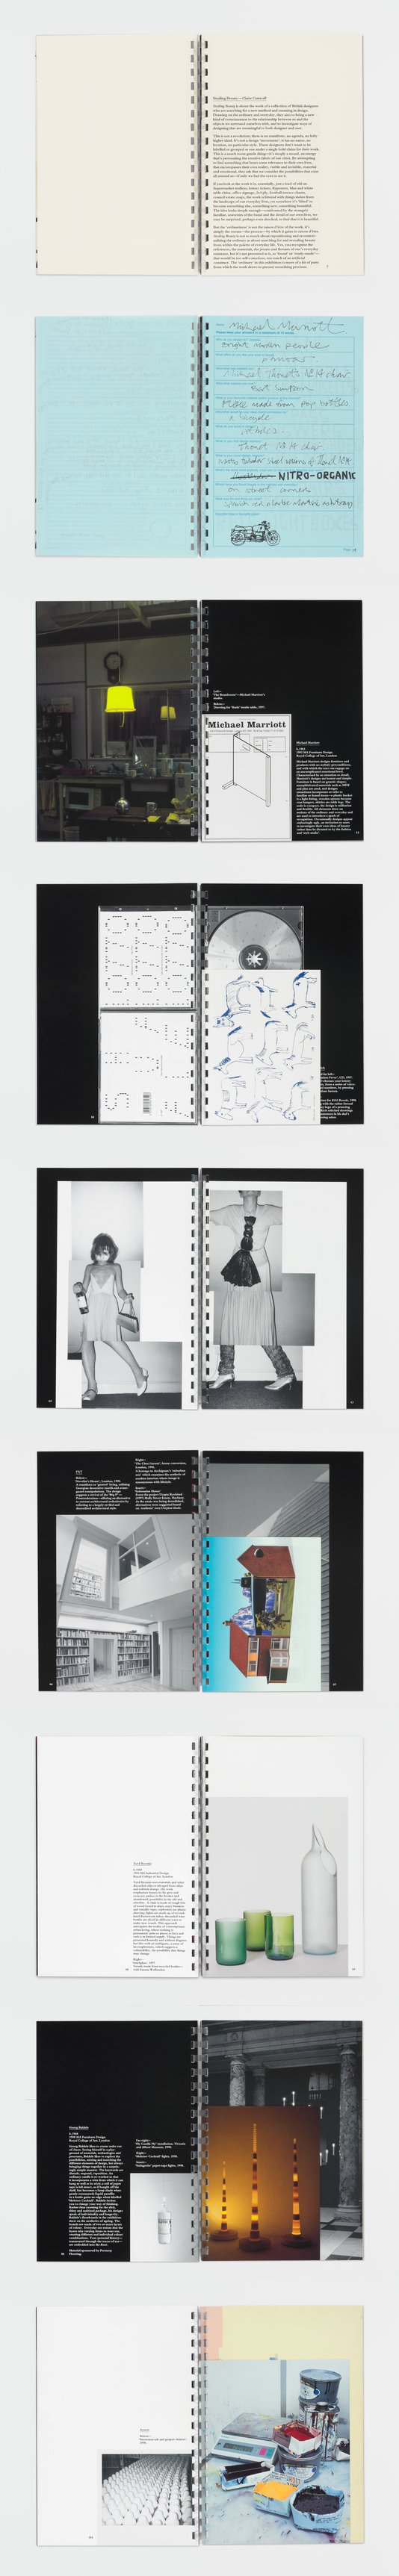 ICA – Stealing Beauty: New British Design, 1999 (Publication), image 4